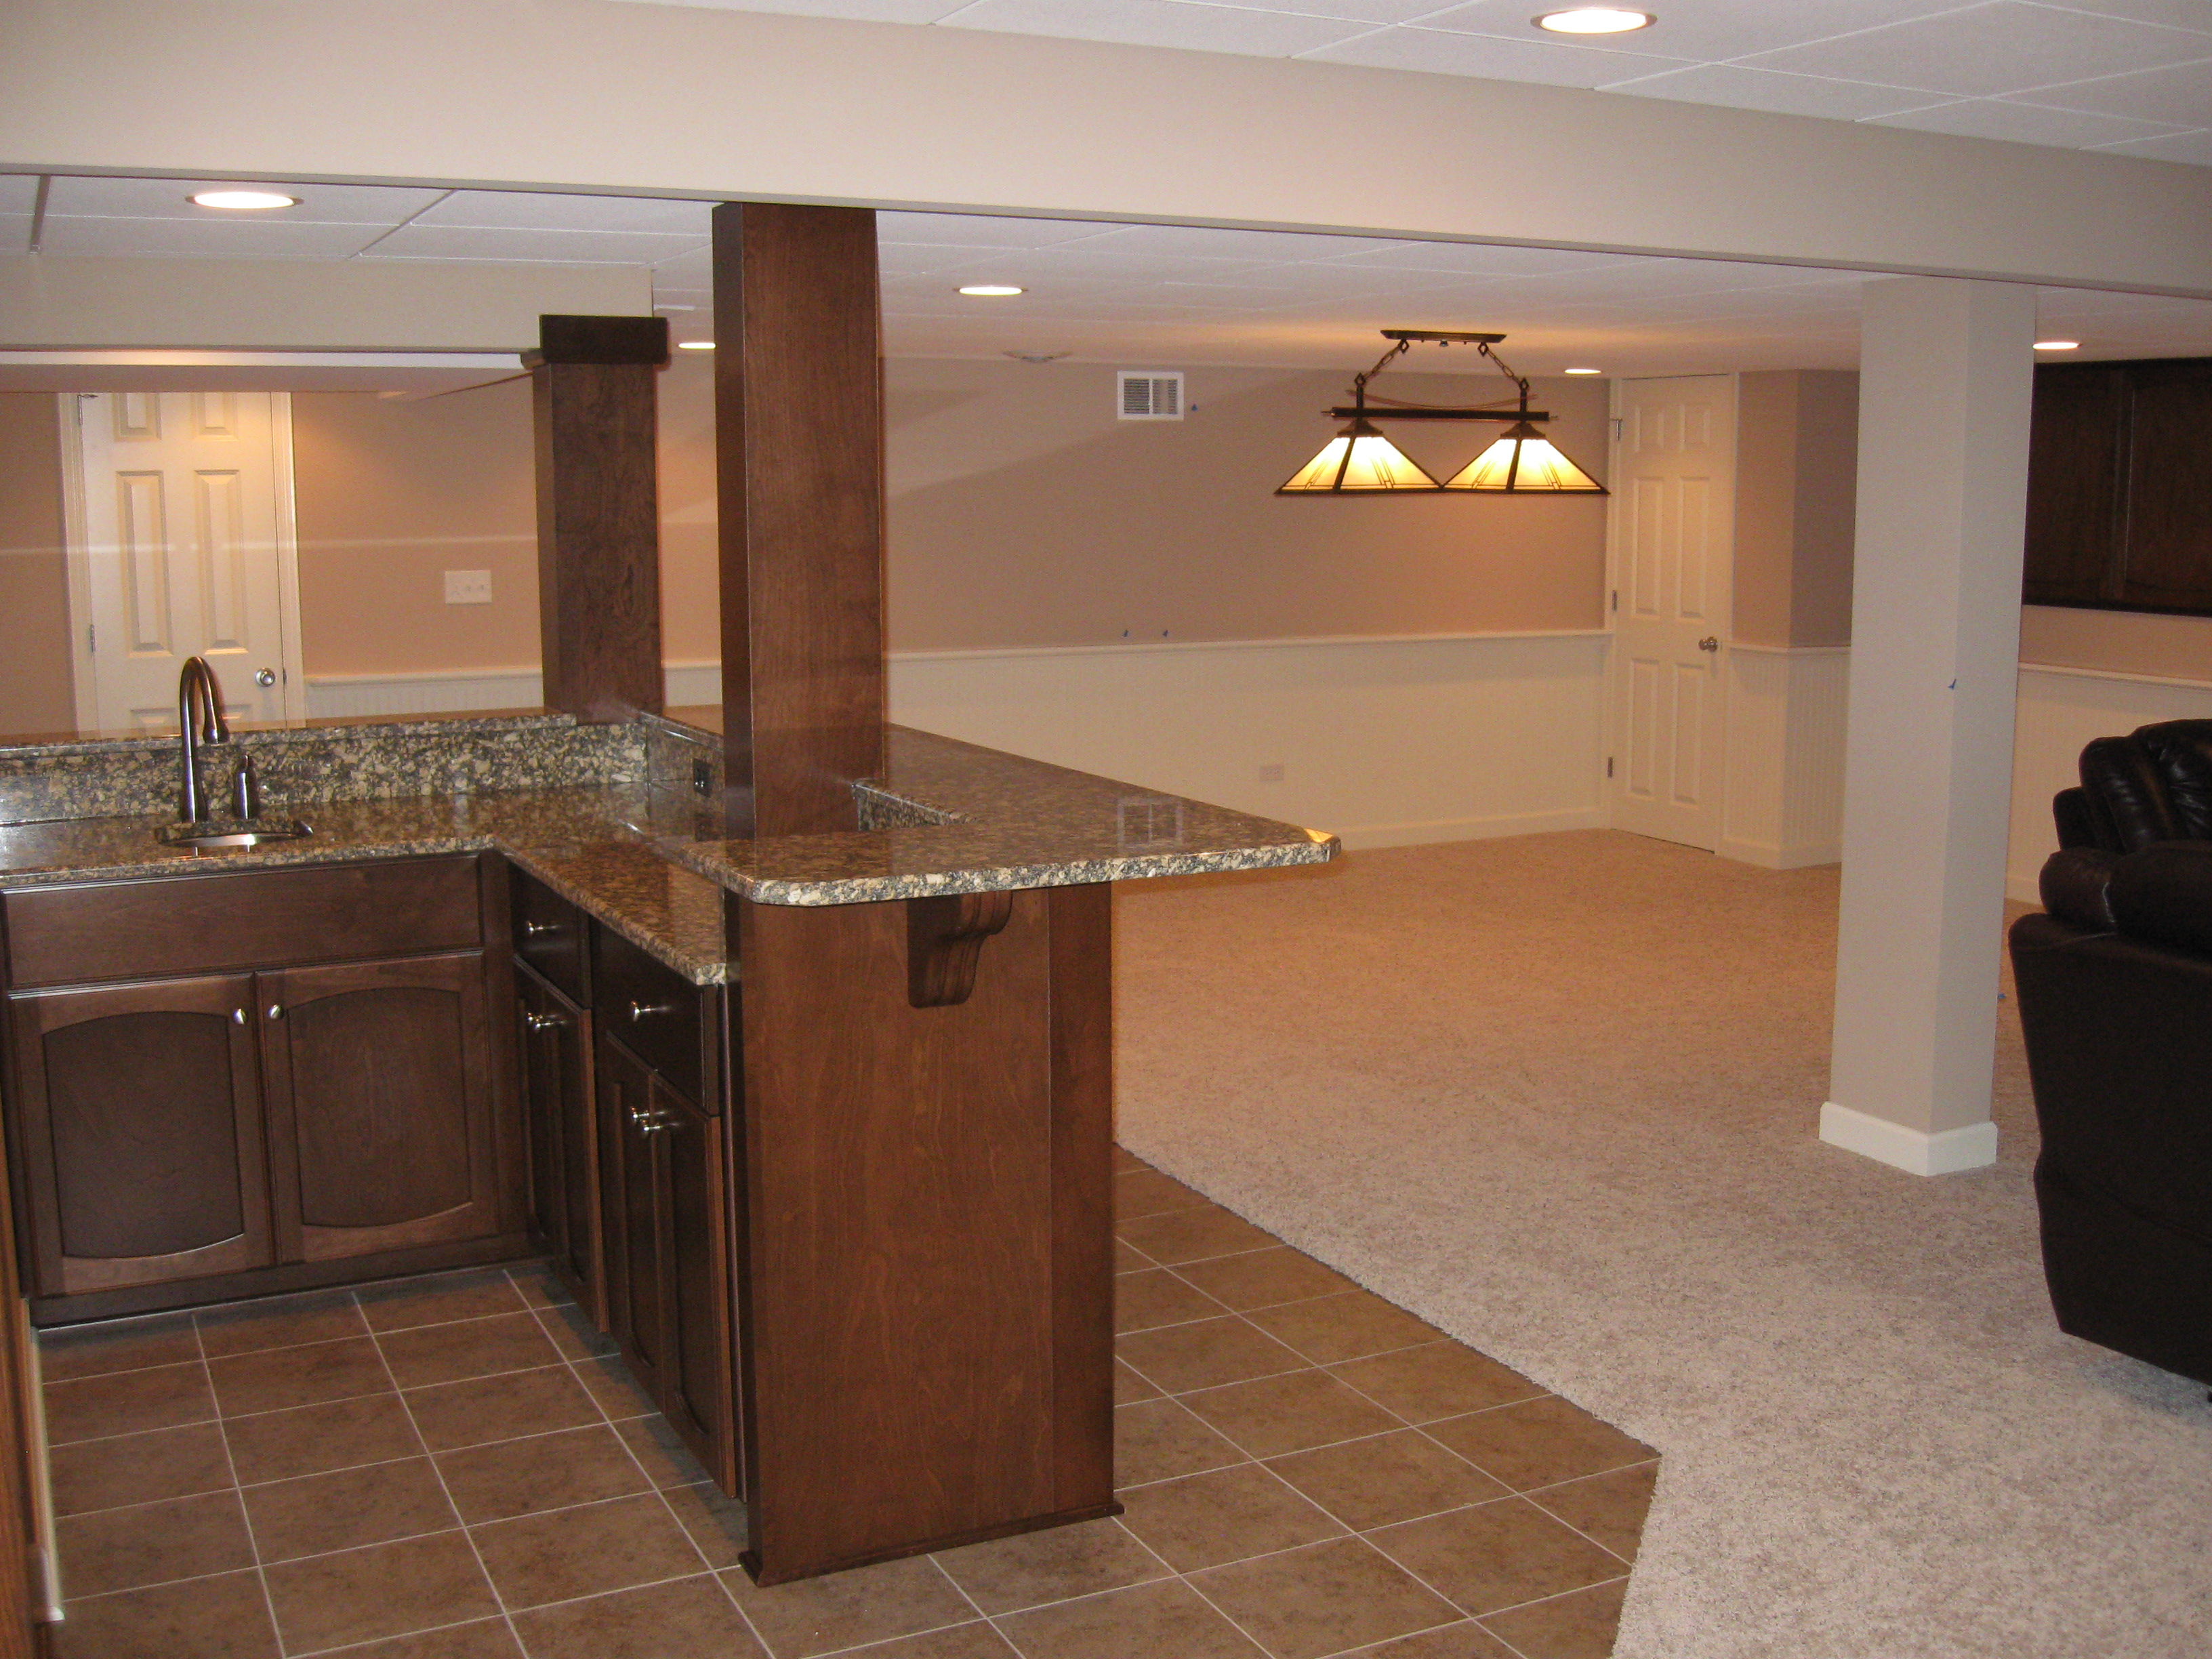 Bar and living area of a finished basement